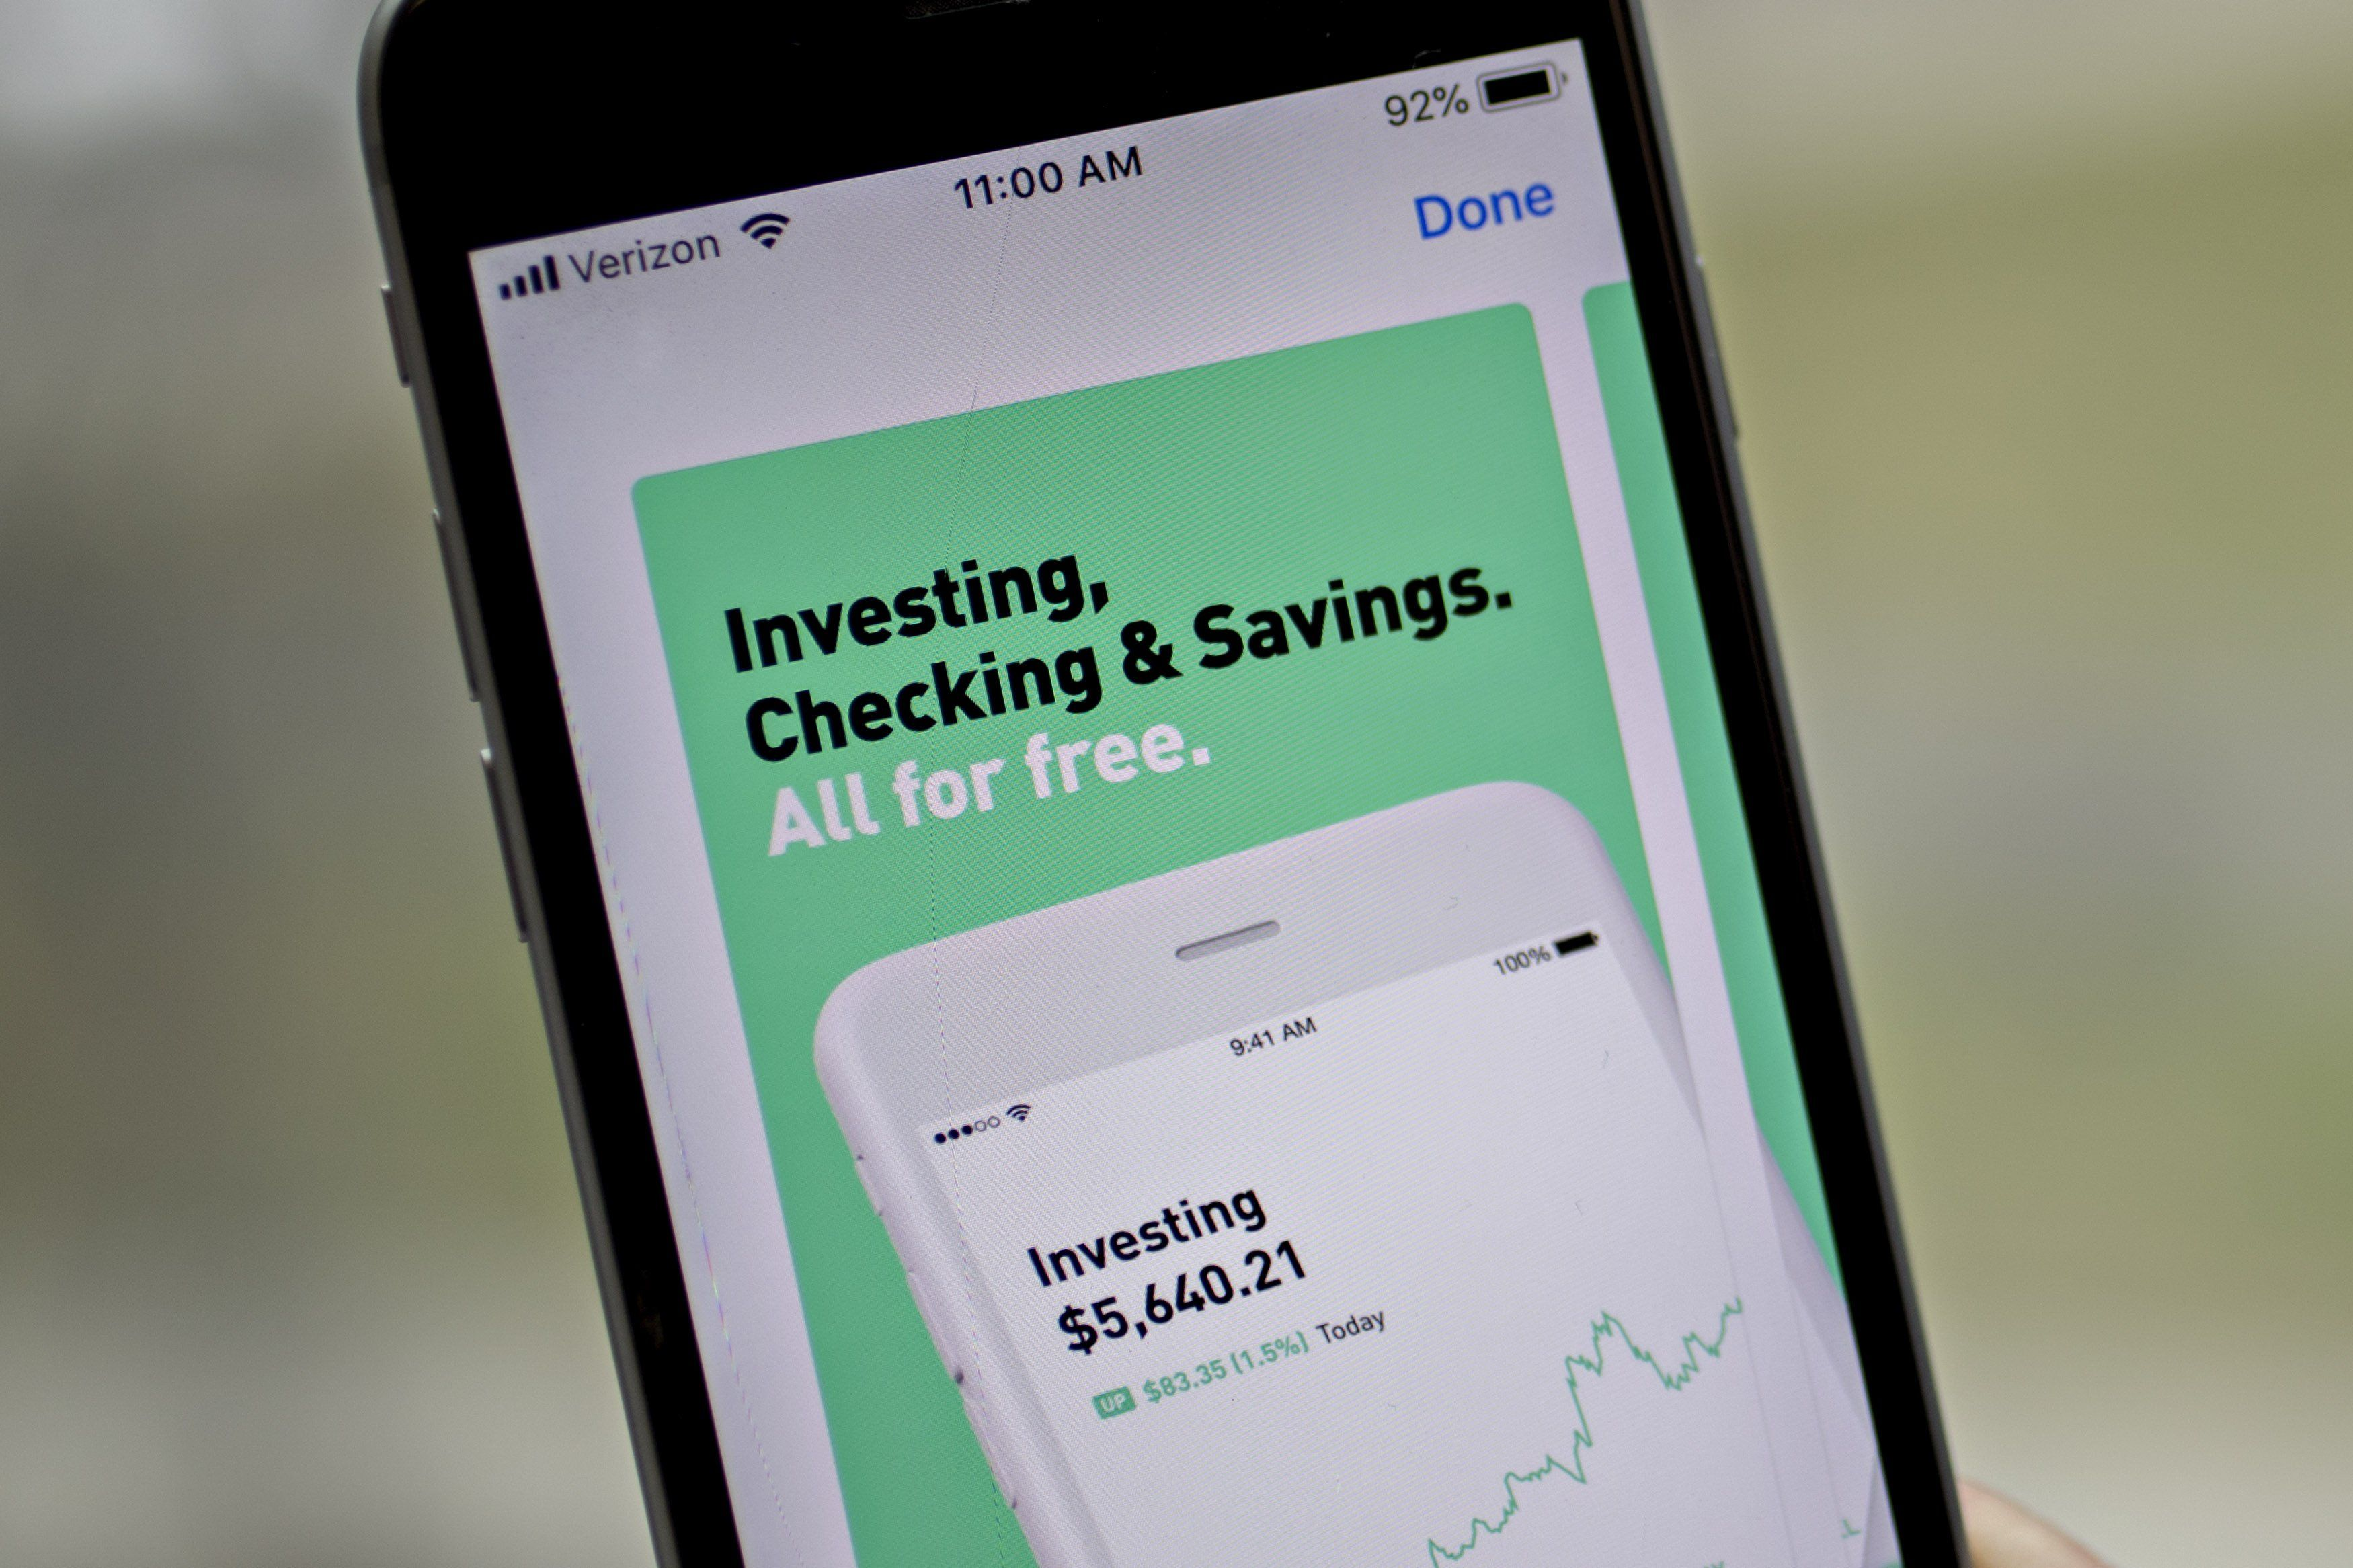 Investing App Robinhood Is Facing 'Serious Concerns' Over